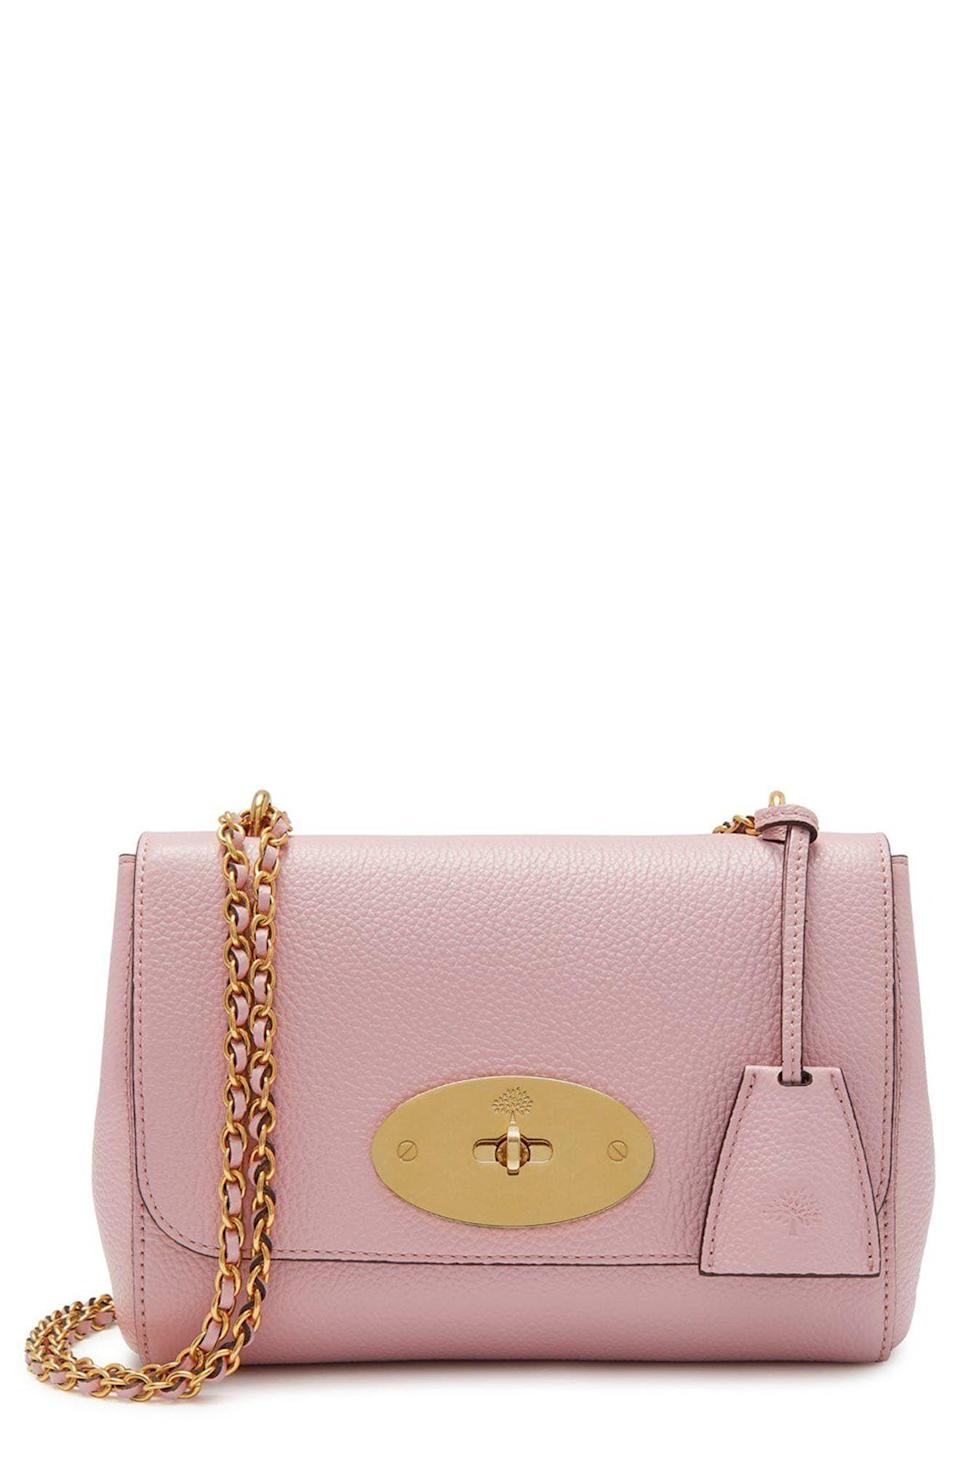 """<p><strong>Mulberry</strong></p><p>nordstrom.com</p><p><strong>$925.00</strong></p><p><a href=""""https://go.redirectingat.com?id=74968X1596630&url=https%3A%2F%2Fwww.nordstrom.com%2Fs%2Fmulberry-lily-convertible-leather-shoulder-bag%2F5788487&sref=https%3A%2F%2Fwww.townandcountrymag.com%2Fstyle%2Ffashion-trends%2Fg10344923%2Fkate-middleton-favorite-fashion-brands-designers%2F"""" rel=""""nofollow noopener"""" target=""""_blank"""" data-ylk=""""slk:Shop Now"""" class=""""link rapid-noclick-resp"""">Shop Now</a></p><p>Mulberry clearly has a special place in the Duchess of Cambridge's heart, and closet. She owns several of the brand's handbags and clutches, and regularly rewears the designs.</p><p><strong>More:</strong> <a href=""""https://www.townandcountrymag.com/society/tradition/g32616301/meghan-markle-kate-middleton-queen-elizabeth-favorite-handbag-brands"""" rel=""""nofollow noopener"""" target=""""_blank"""" data-ylk=""""slk:Royals Love These Handbag Brands"""" class=""""link rapid-noclick-resp"""">Royals Love These Handbag Brands</a></p>"""